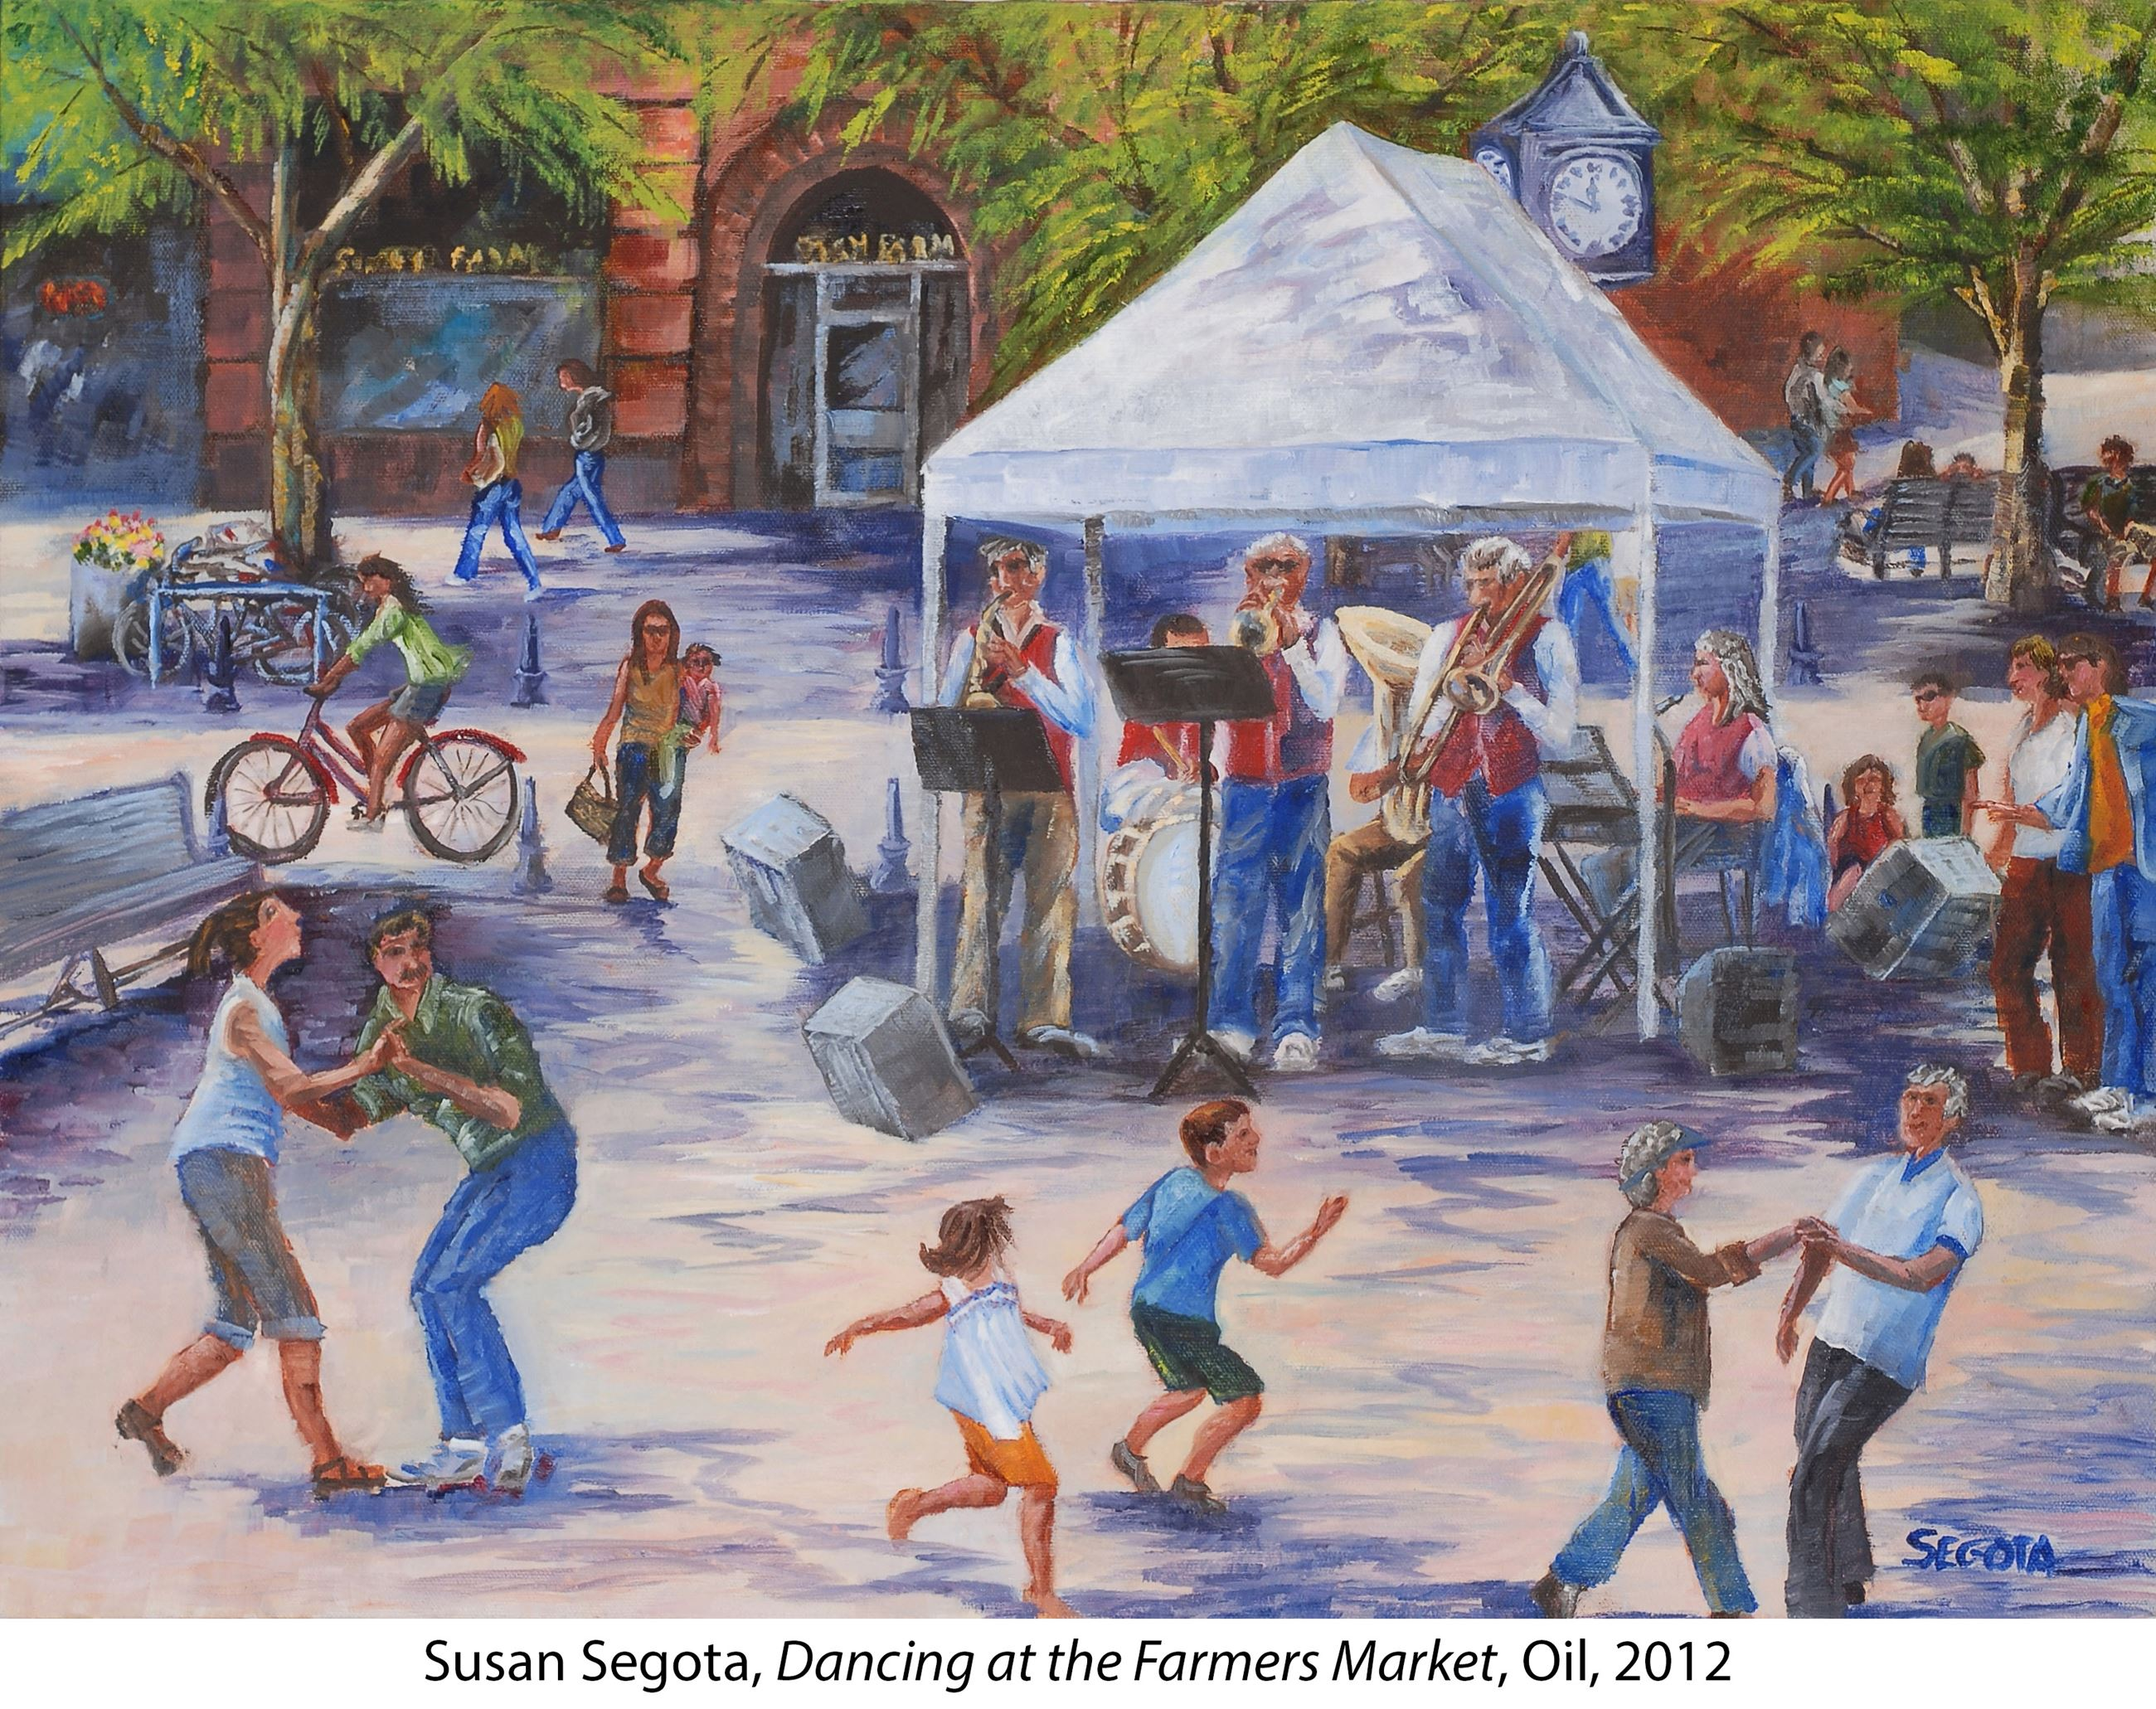 Oil painting of people dancing and enjoying a band playing at the farmers market